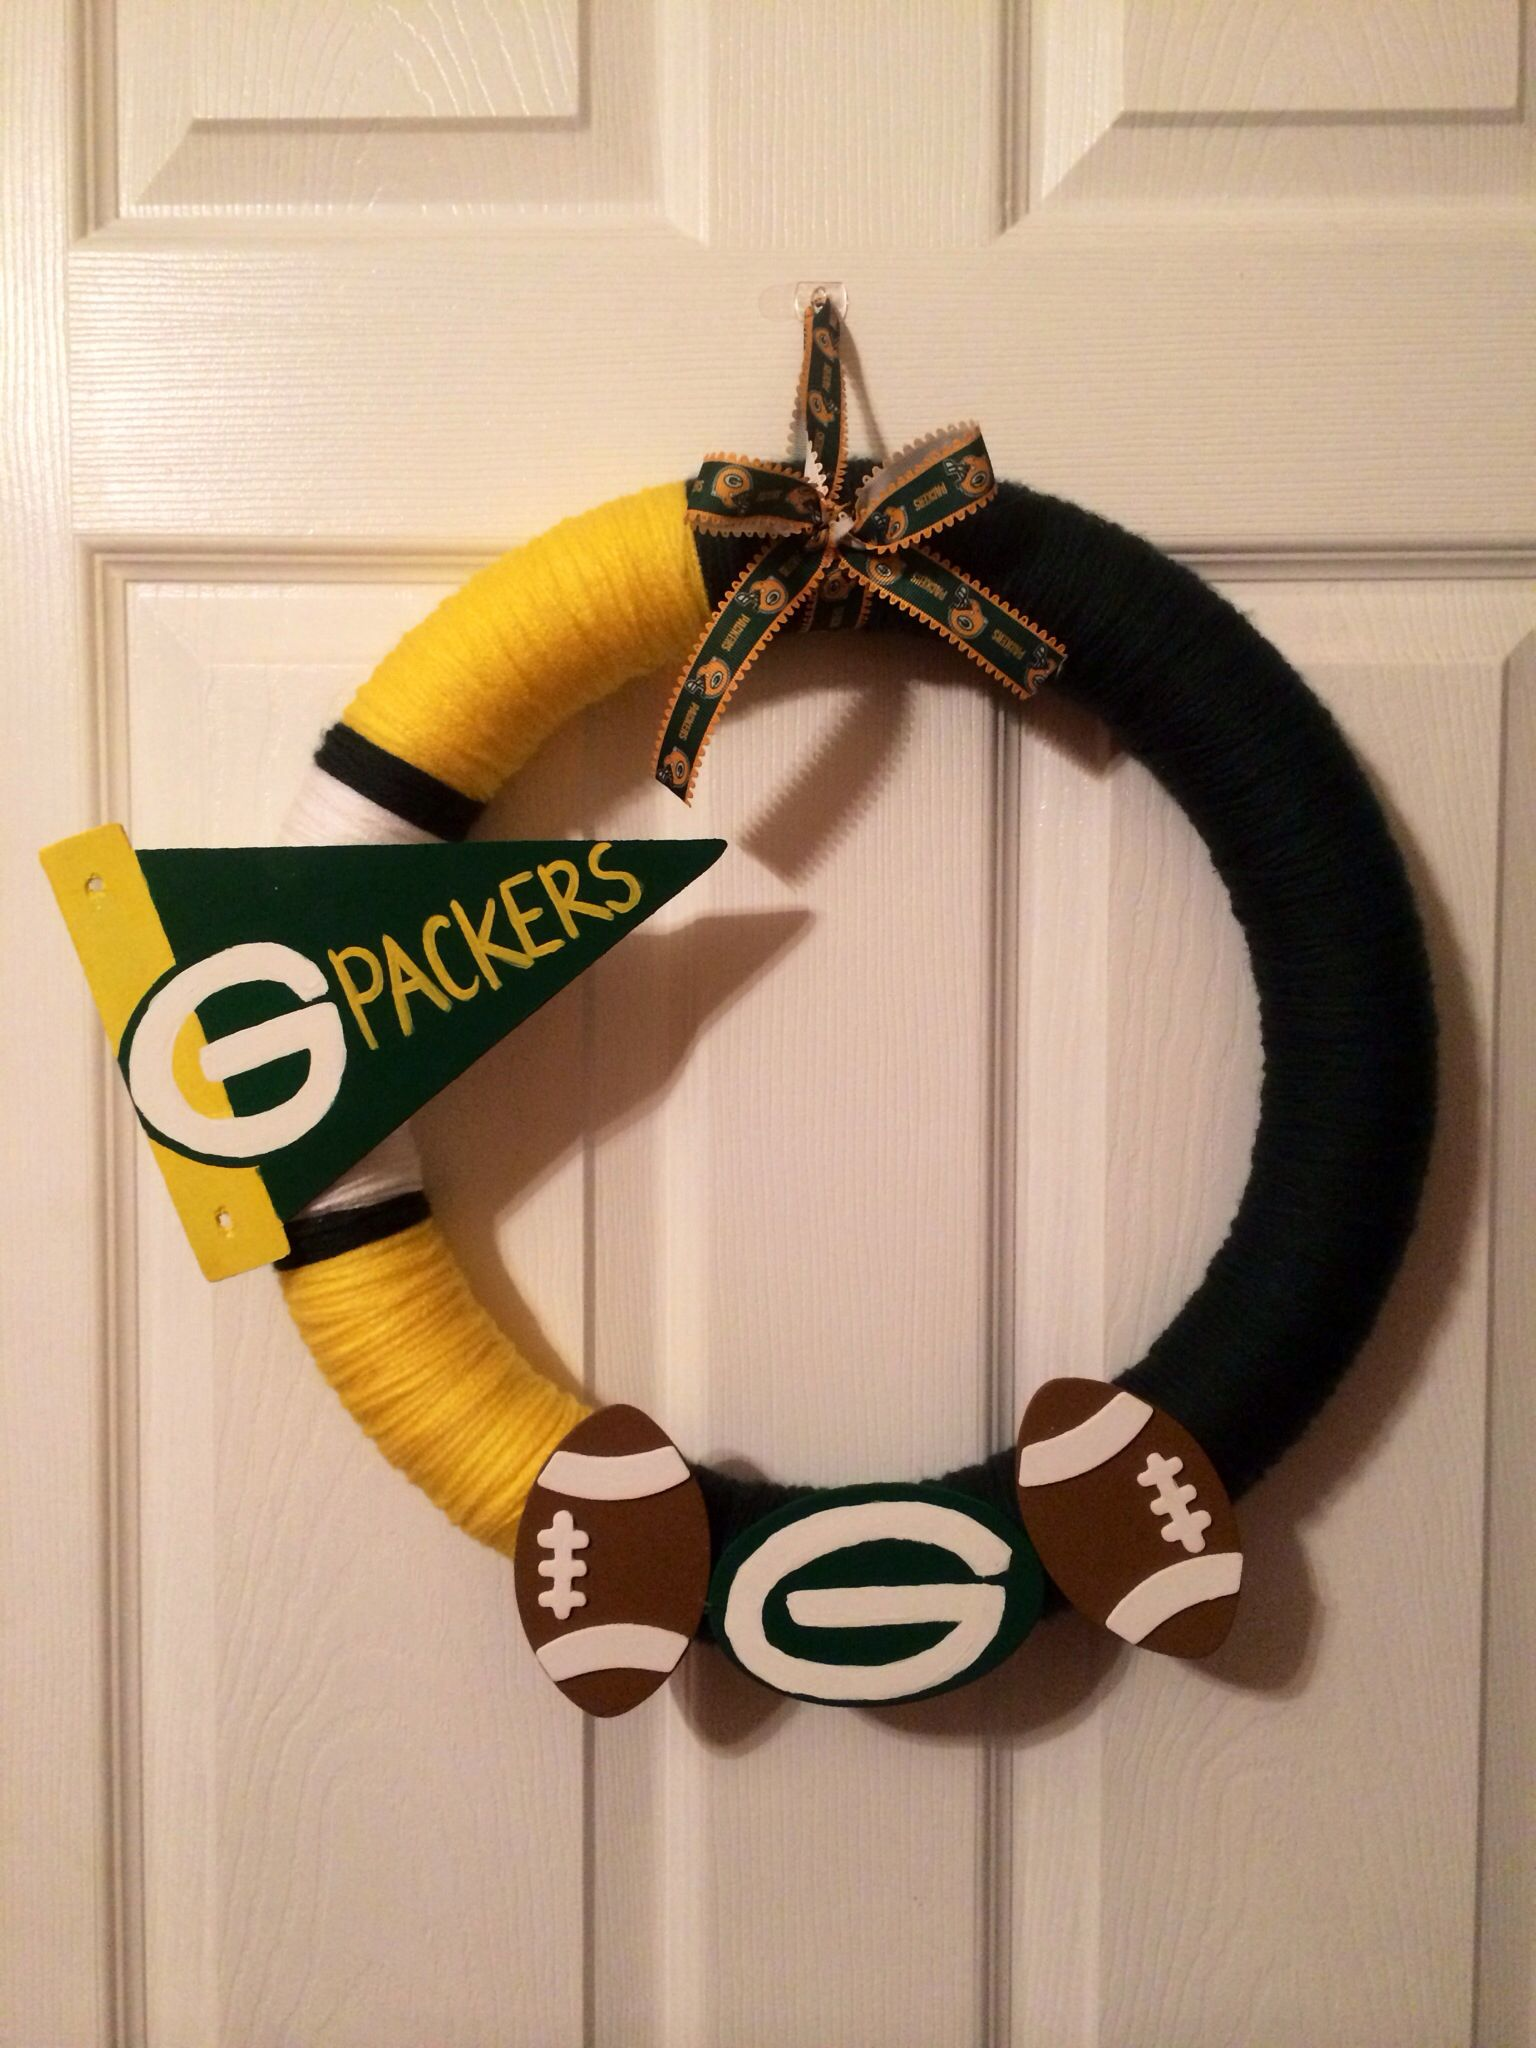 Green Bay Packers Yarn Wreath Made By 2 Crafty Mamas Check Us Out On Facebook For More How To Make Wreaths